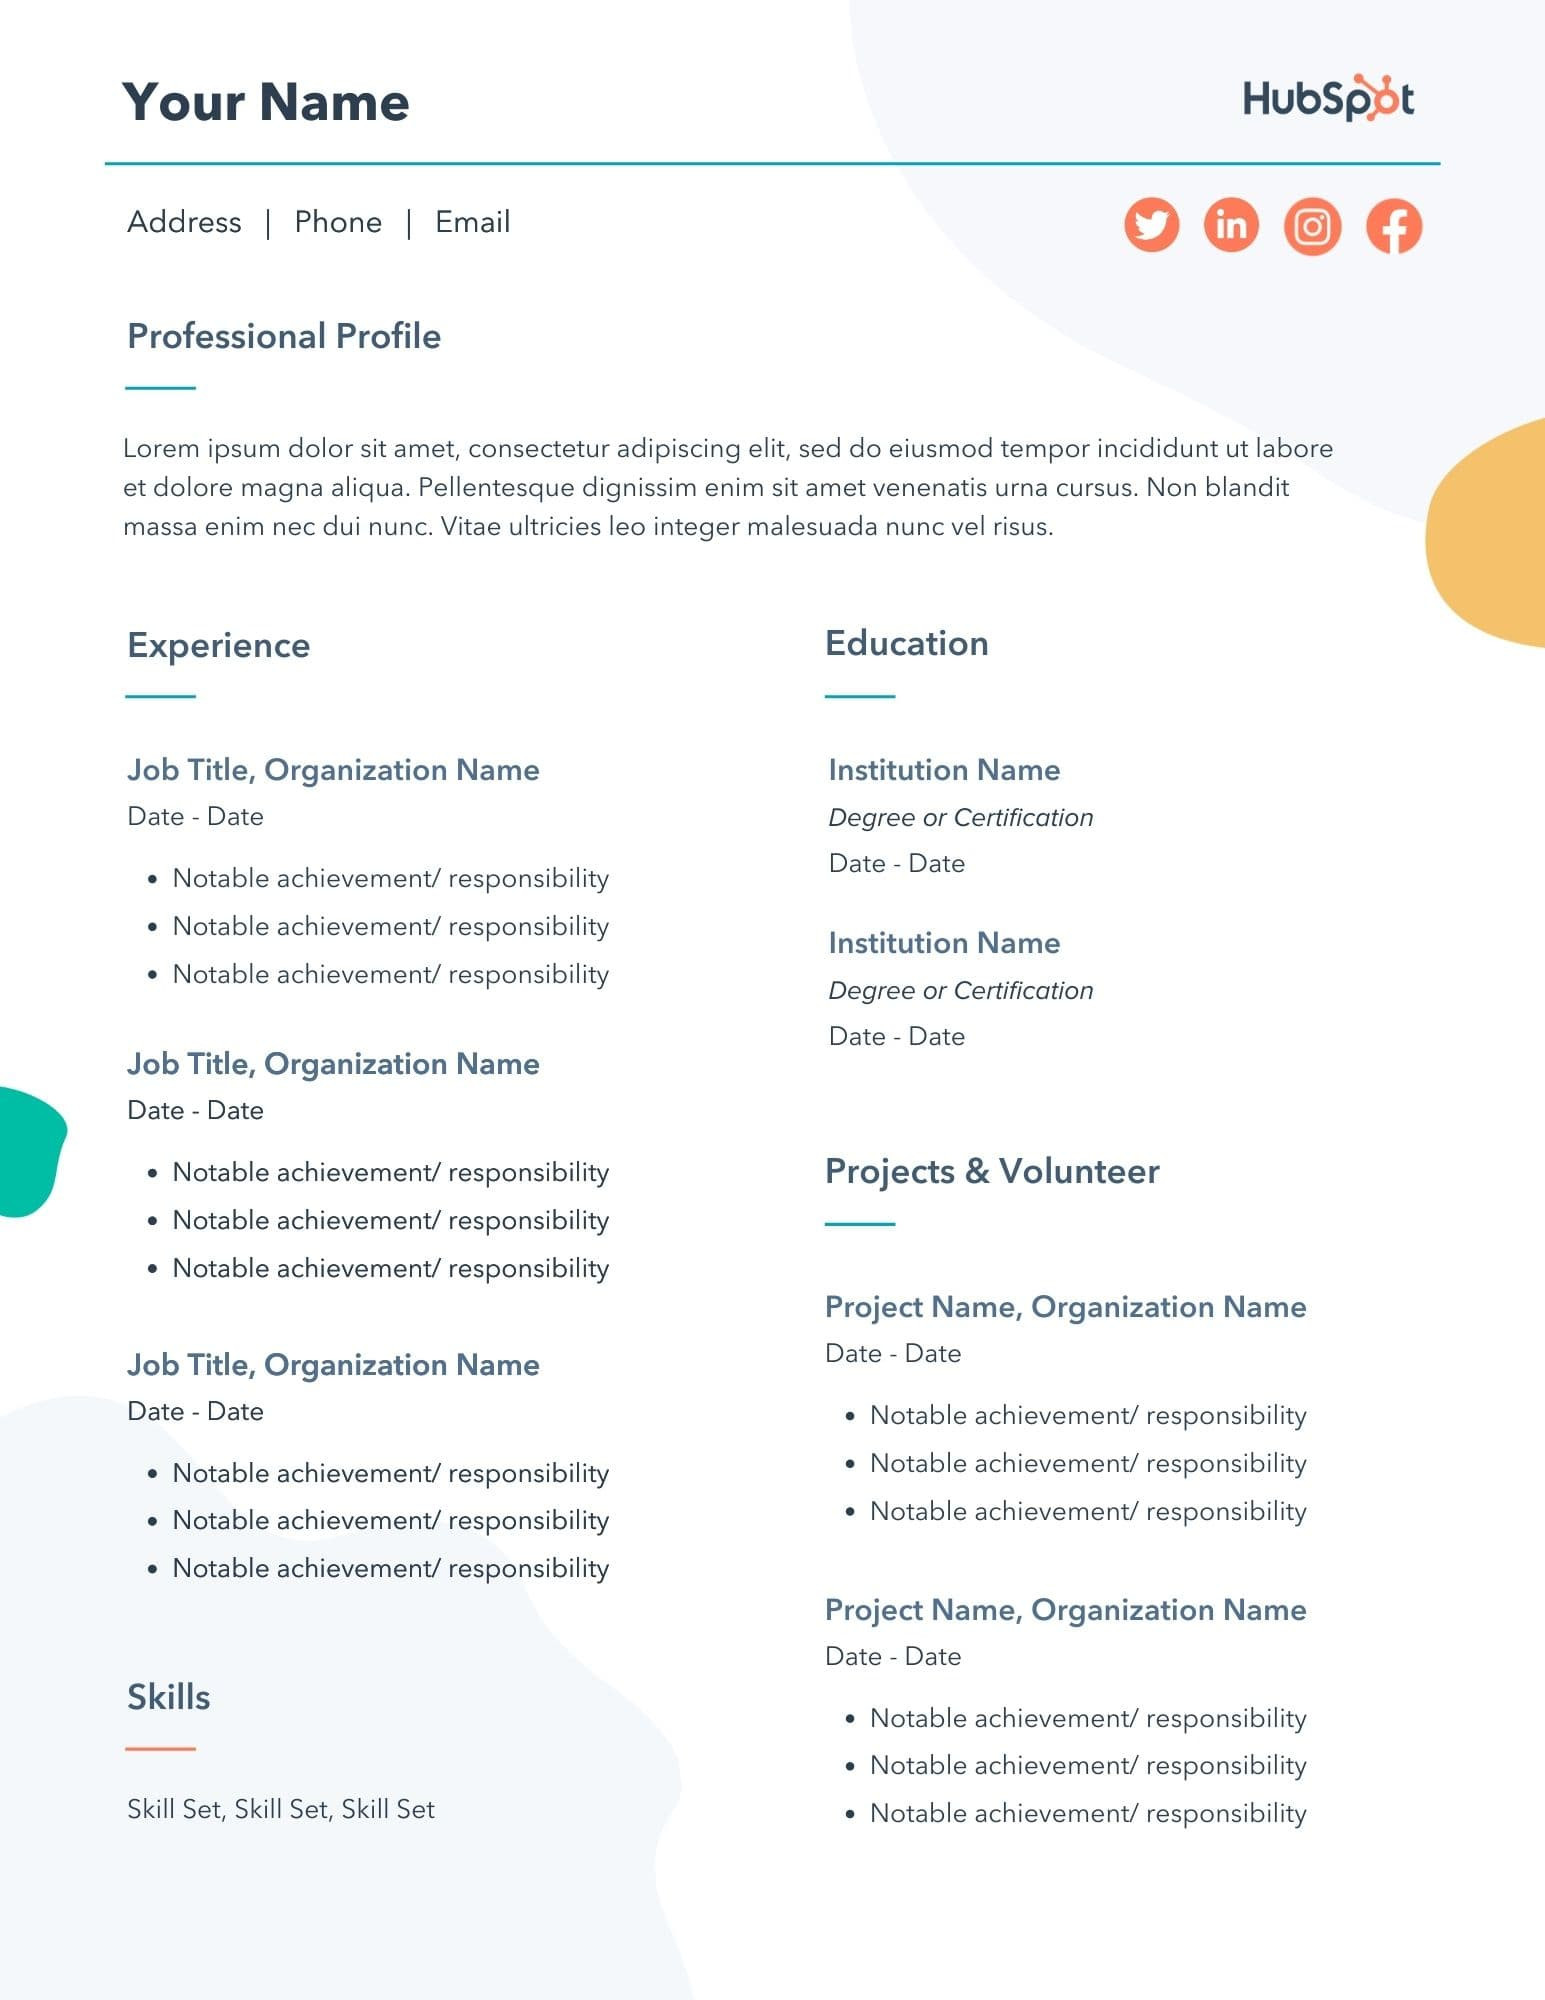 Sample Resume Template for Experienced Candidate 29 Free Resume Templates for Microsoft Word (& How to Make Your Own)